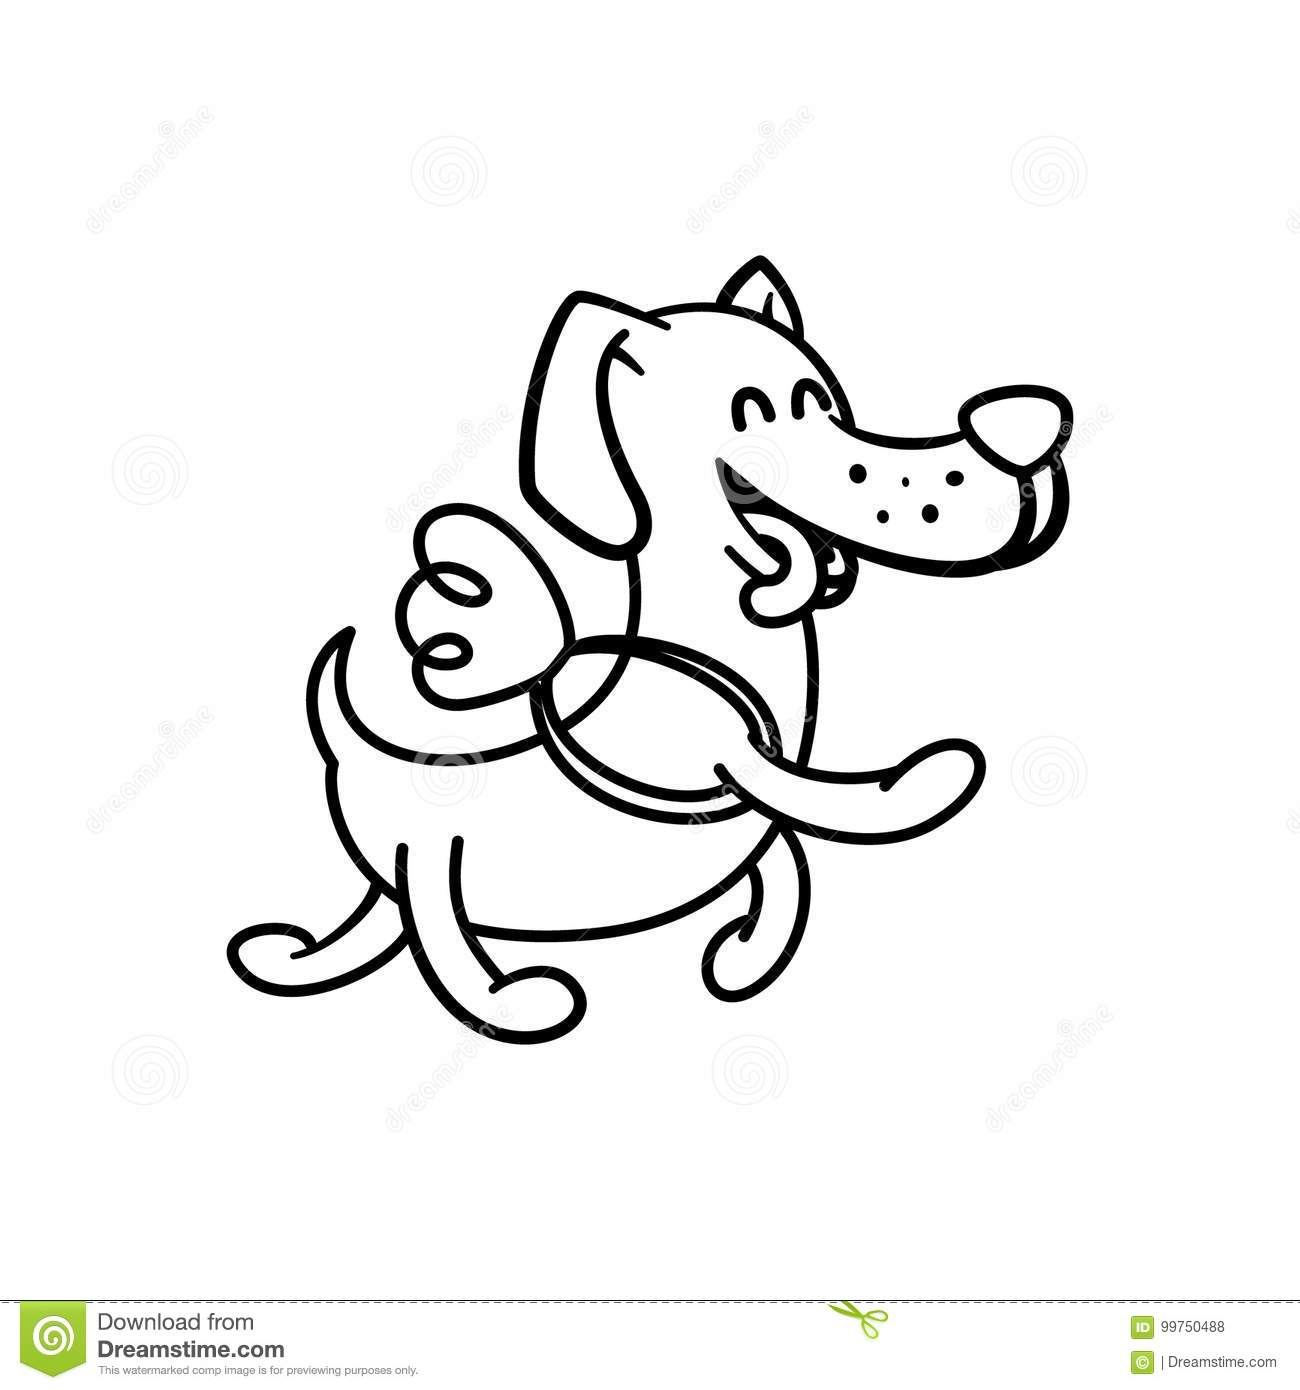 Dachshund Coloring Book For Adults Vector Cartoon Vector